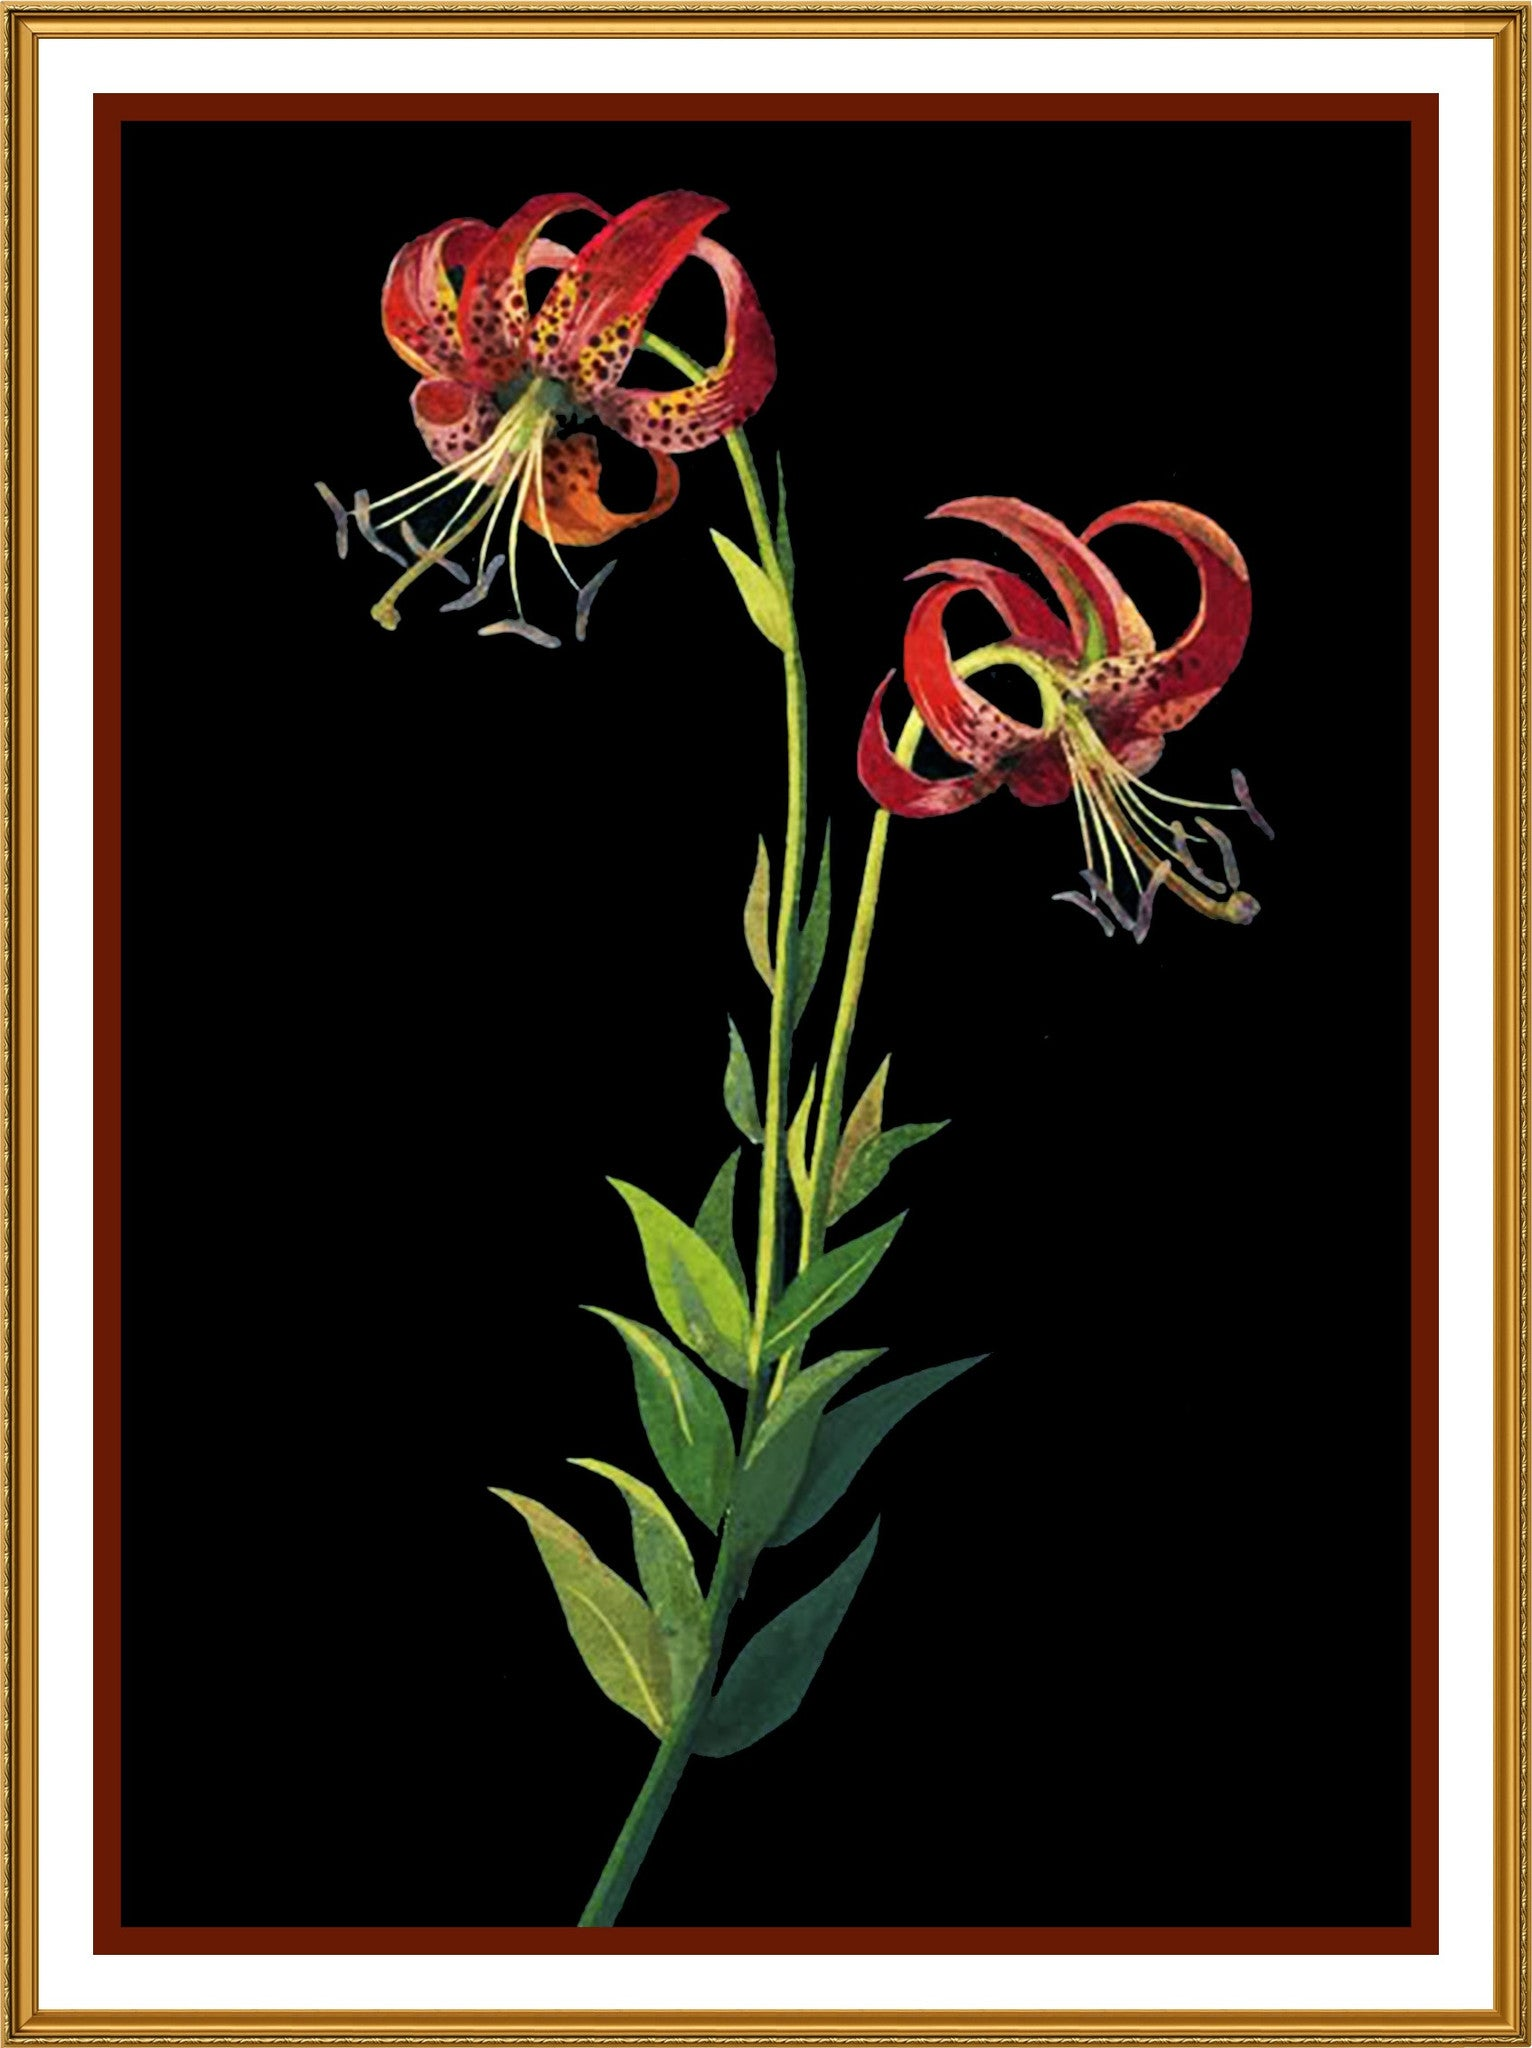 Tiger lily flowers by mary delany counted cross stitch or counted producttitle orenco originals llc counted cross stitch izmirmasajfo